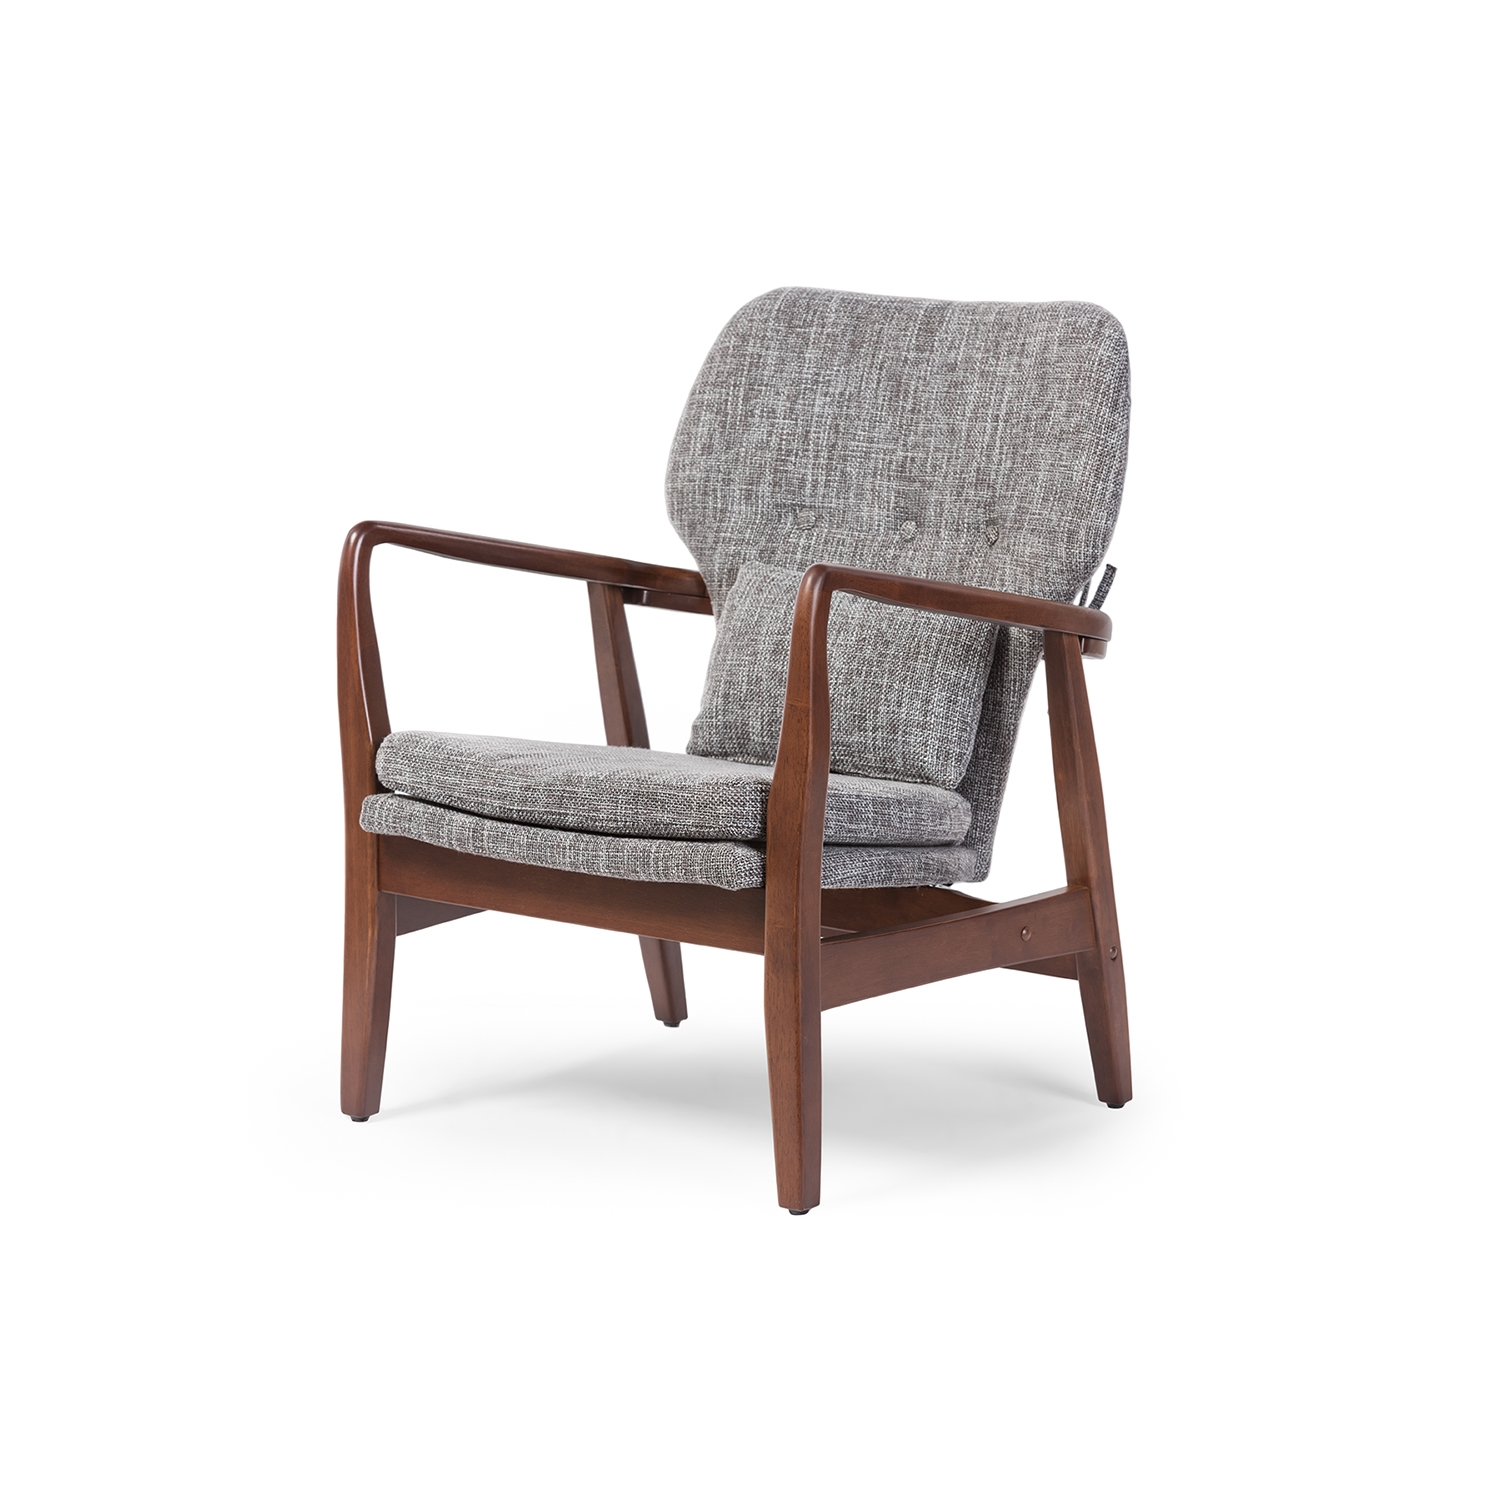 Superbe Baxton Studio Rundell Mid Century Modern Retro Grey Fabric Upholstered  Leisure Accent Chair In Walnut Wood Frame